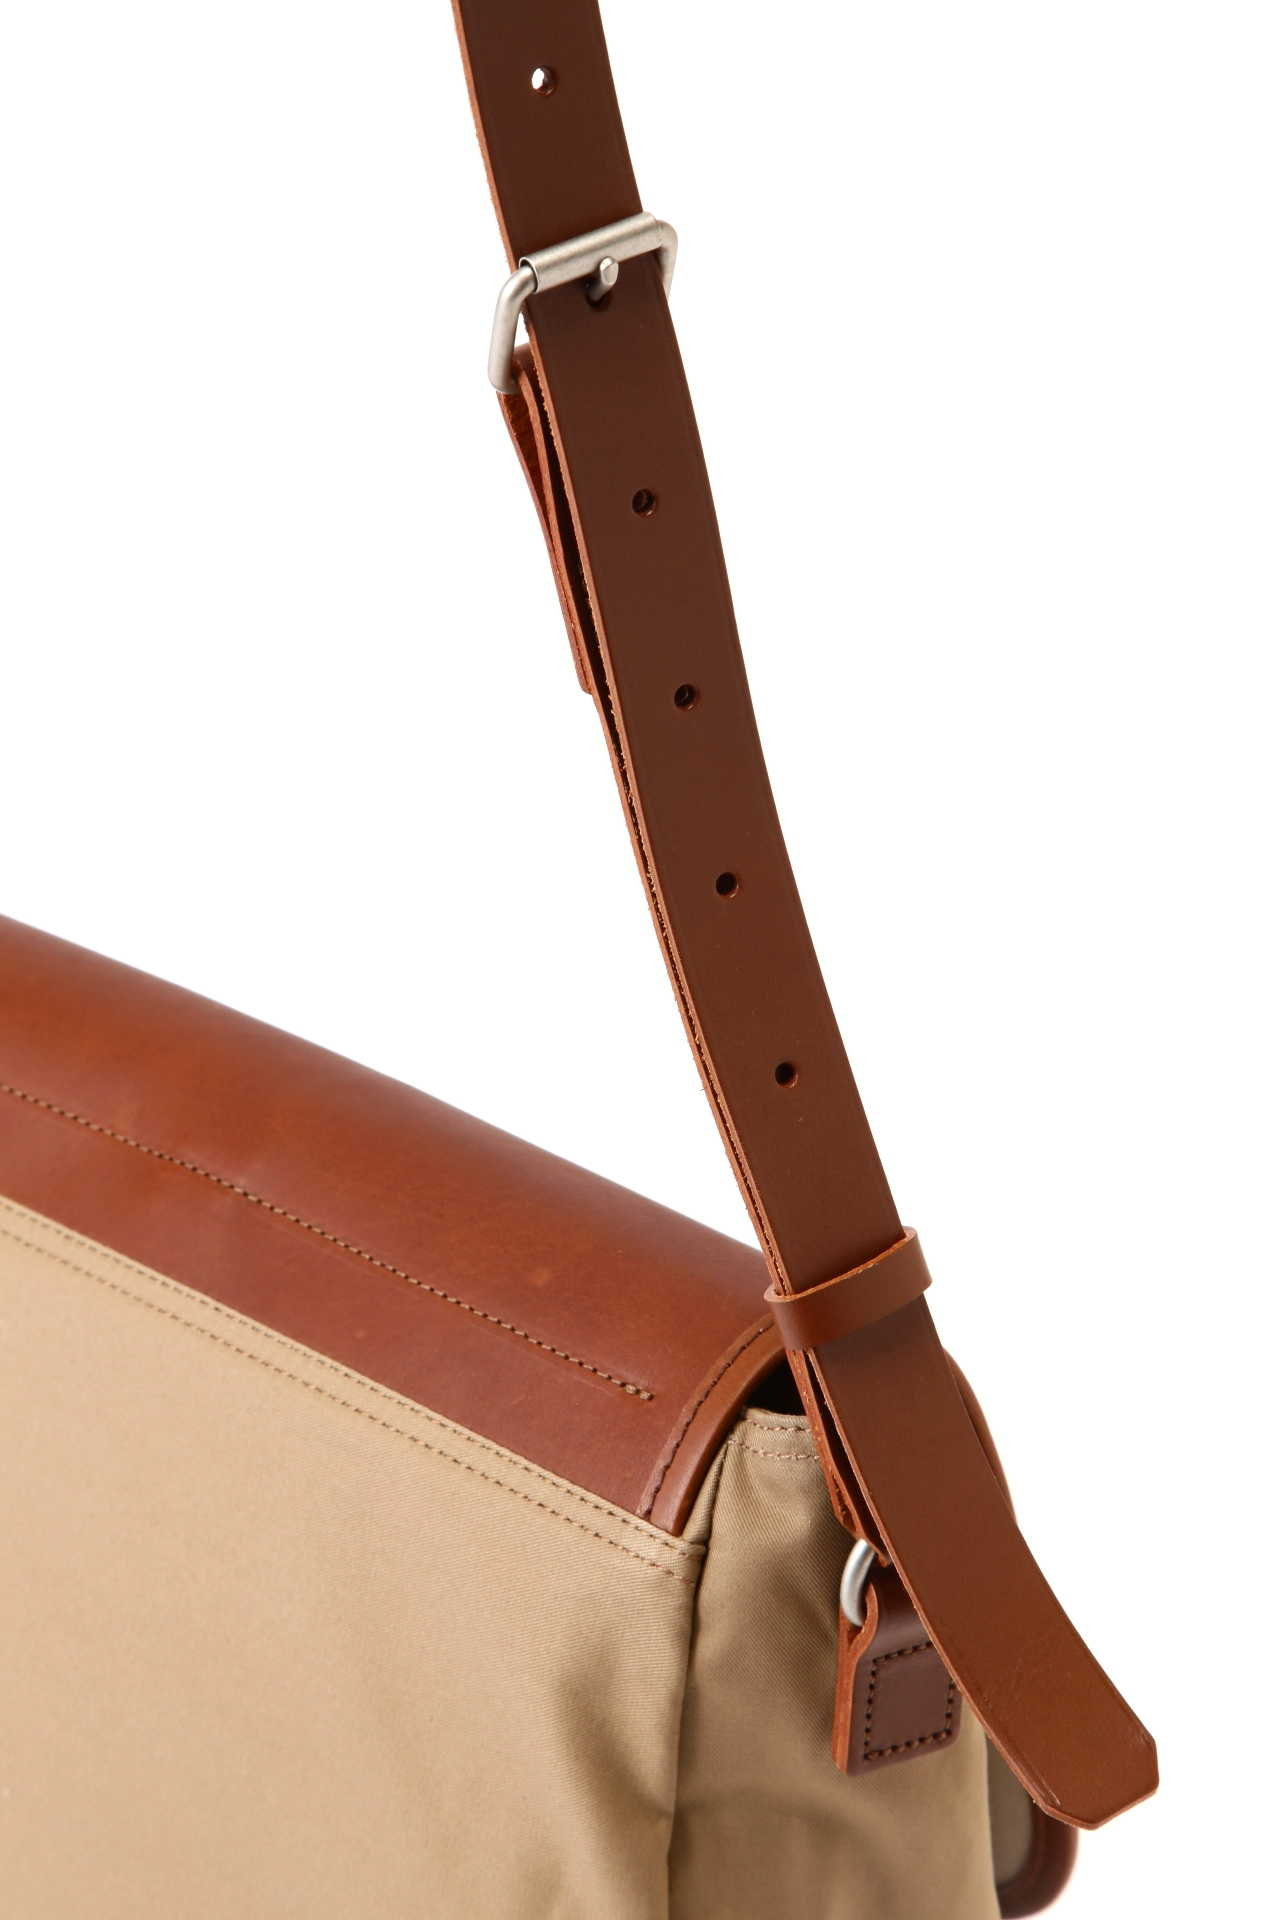 COTTON LEATHER SATCHEL4